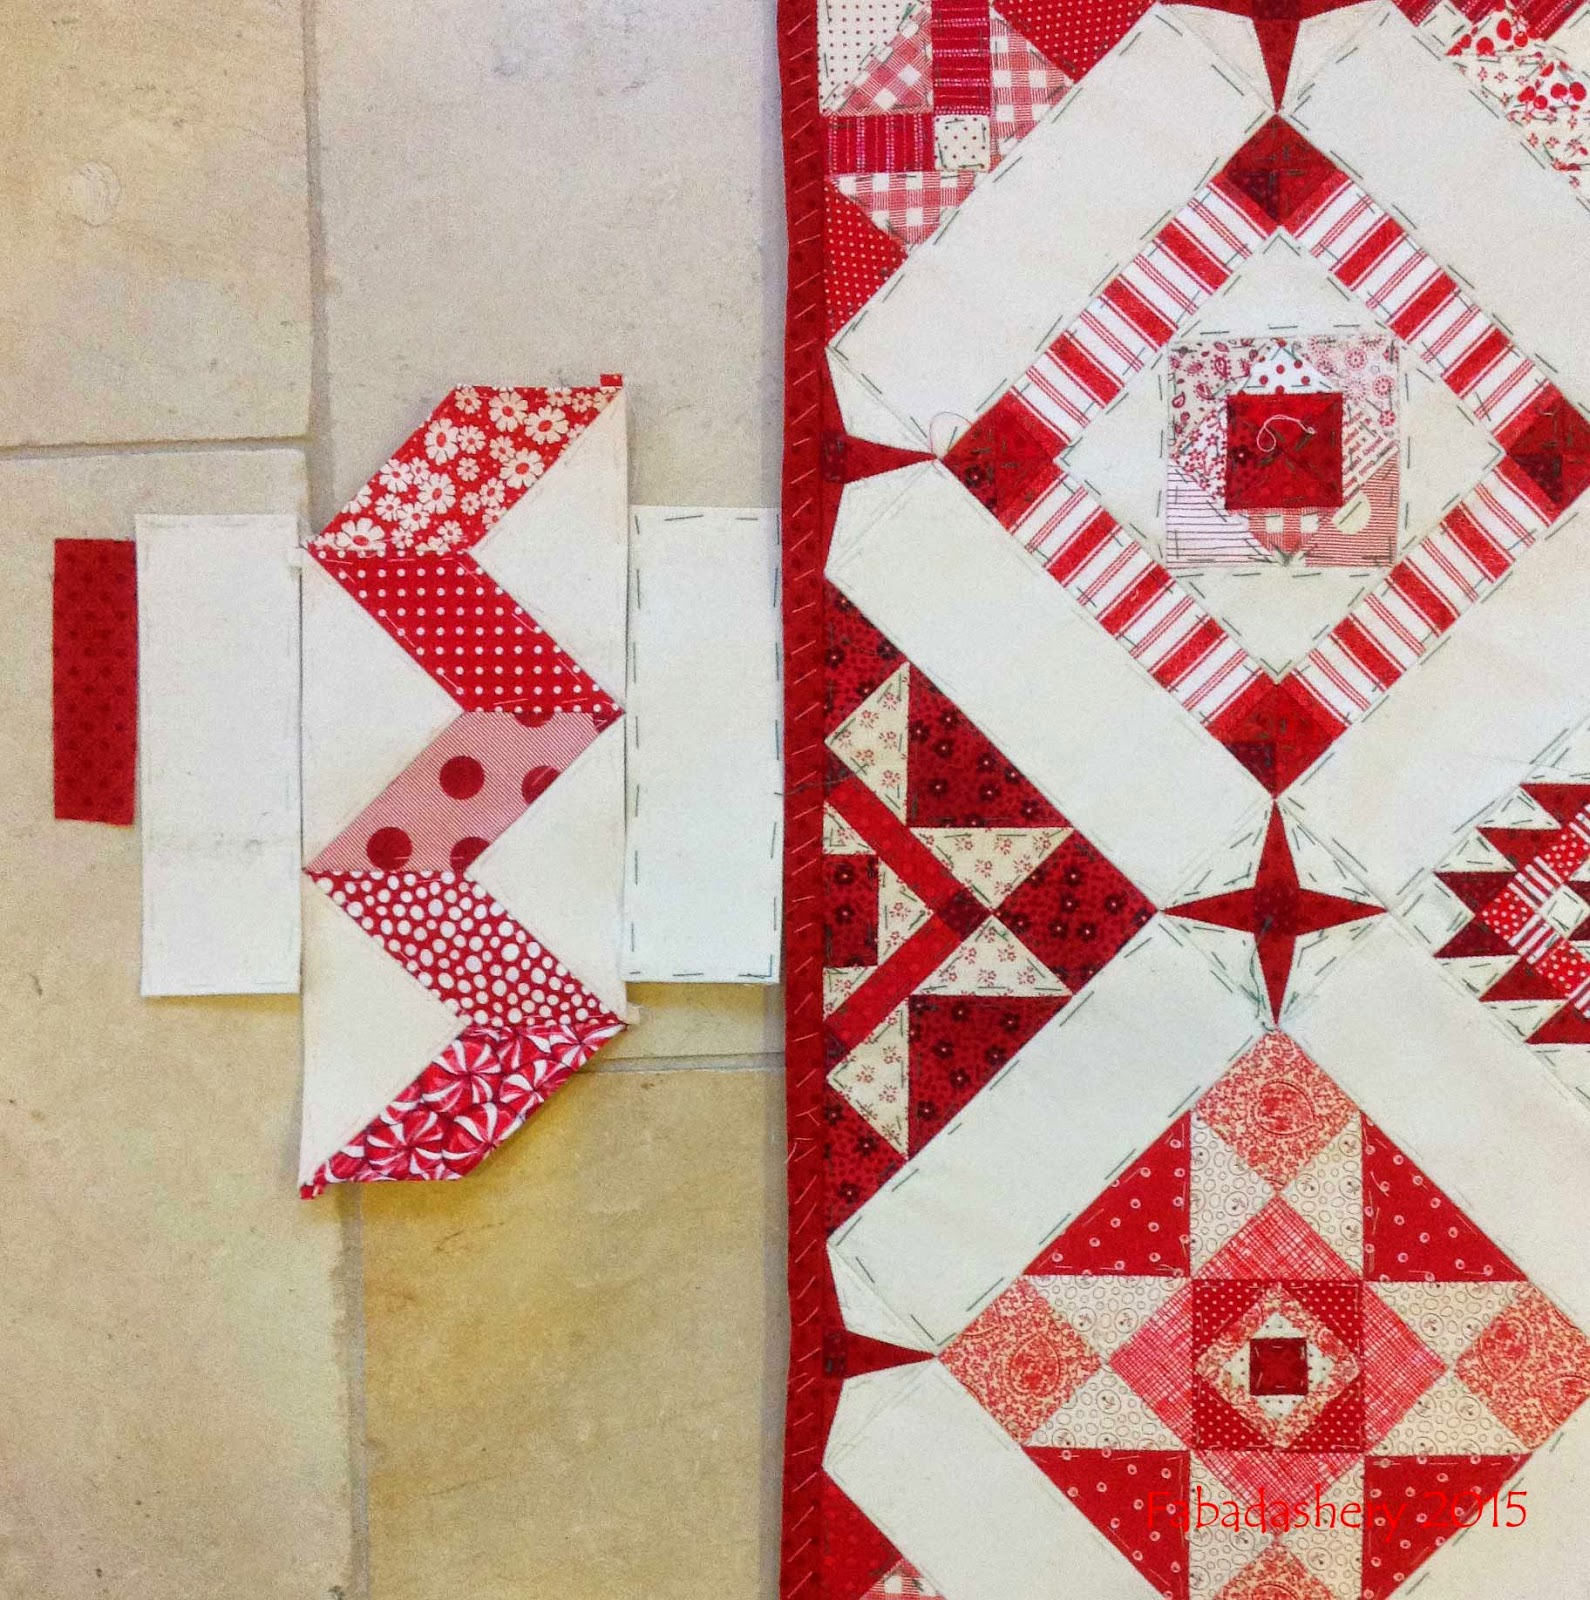 Nearly Insane Quilt - Red with White Zig Zag Border